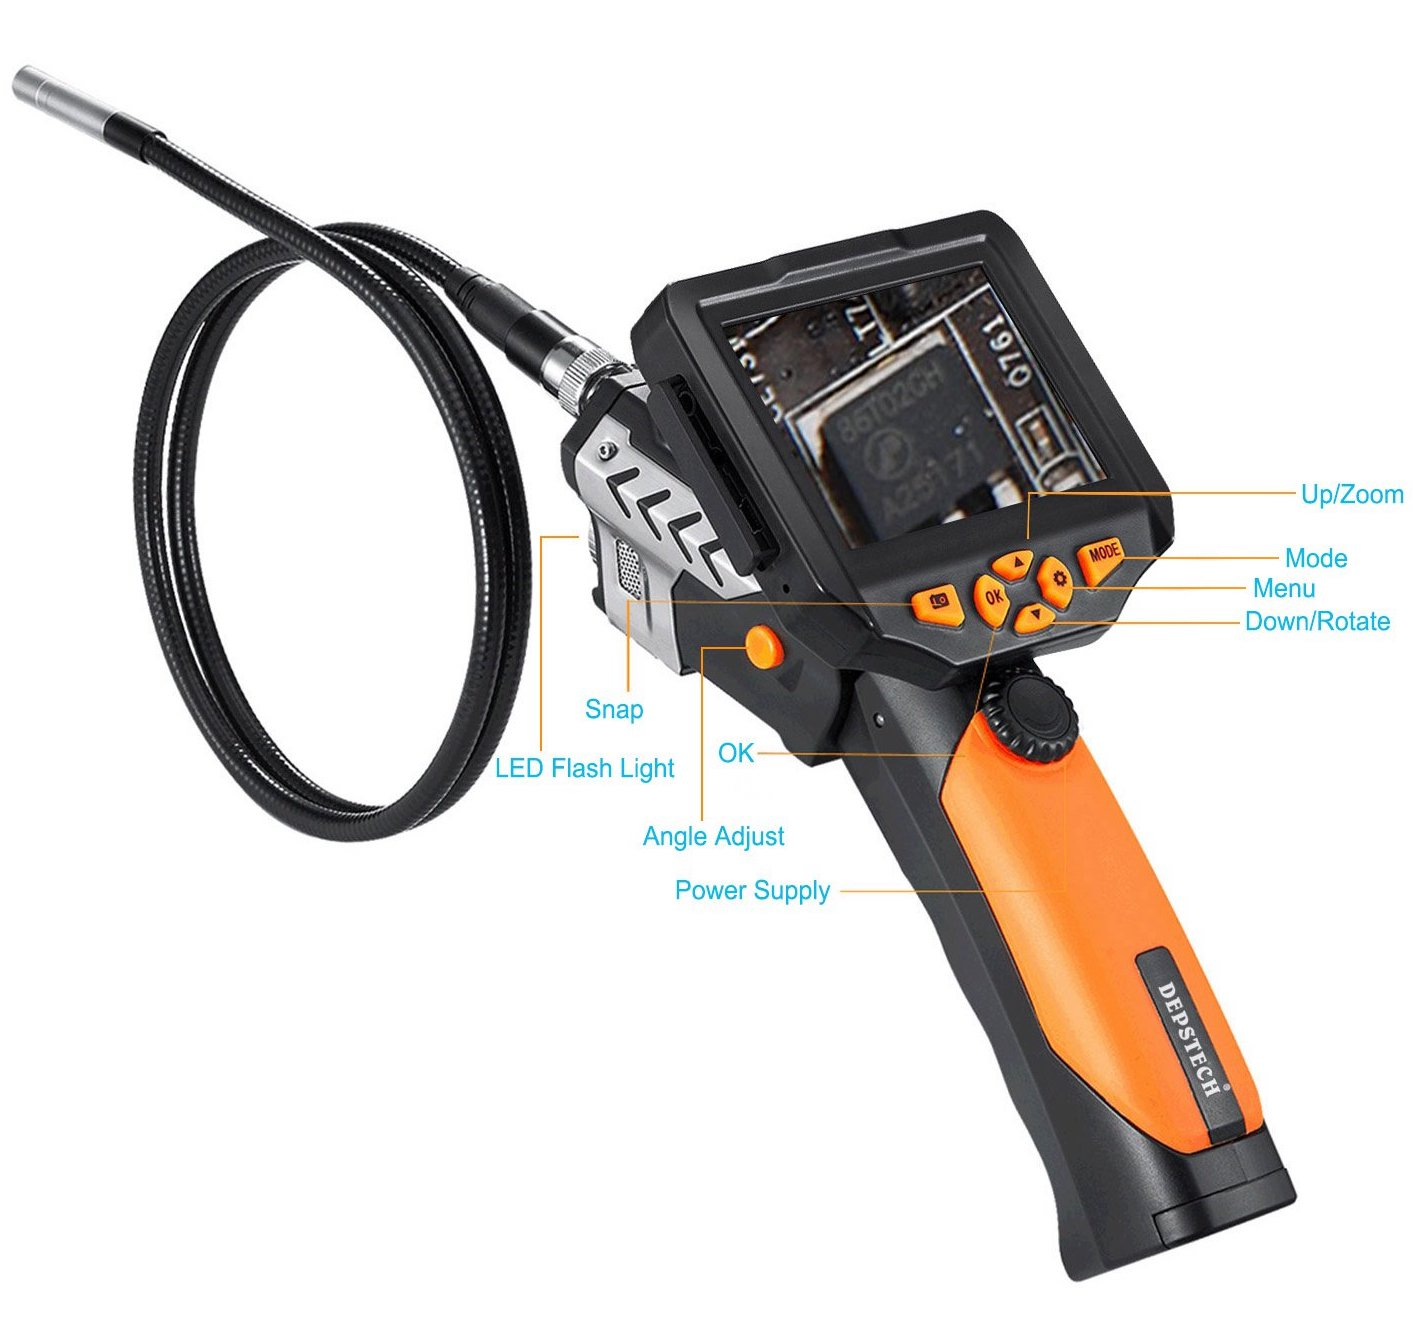 DEPSTECH Waterproof LCD Borescope features